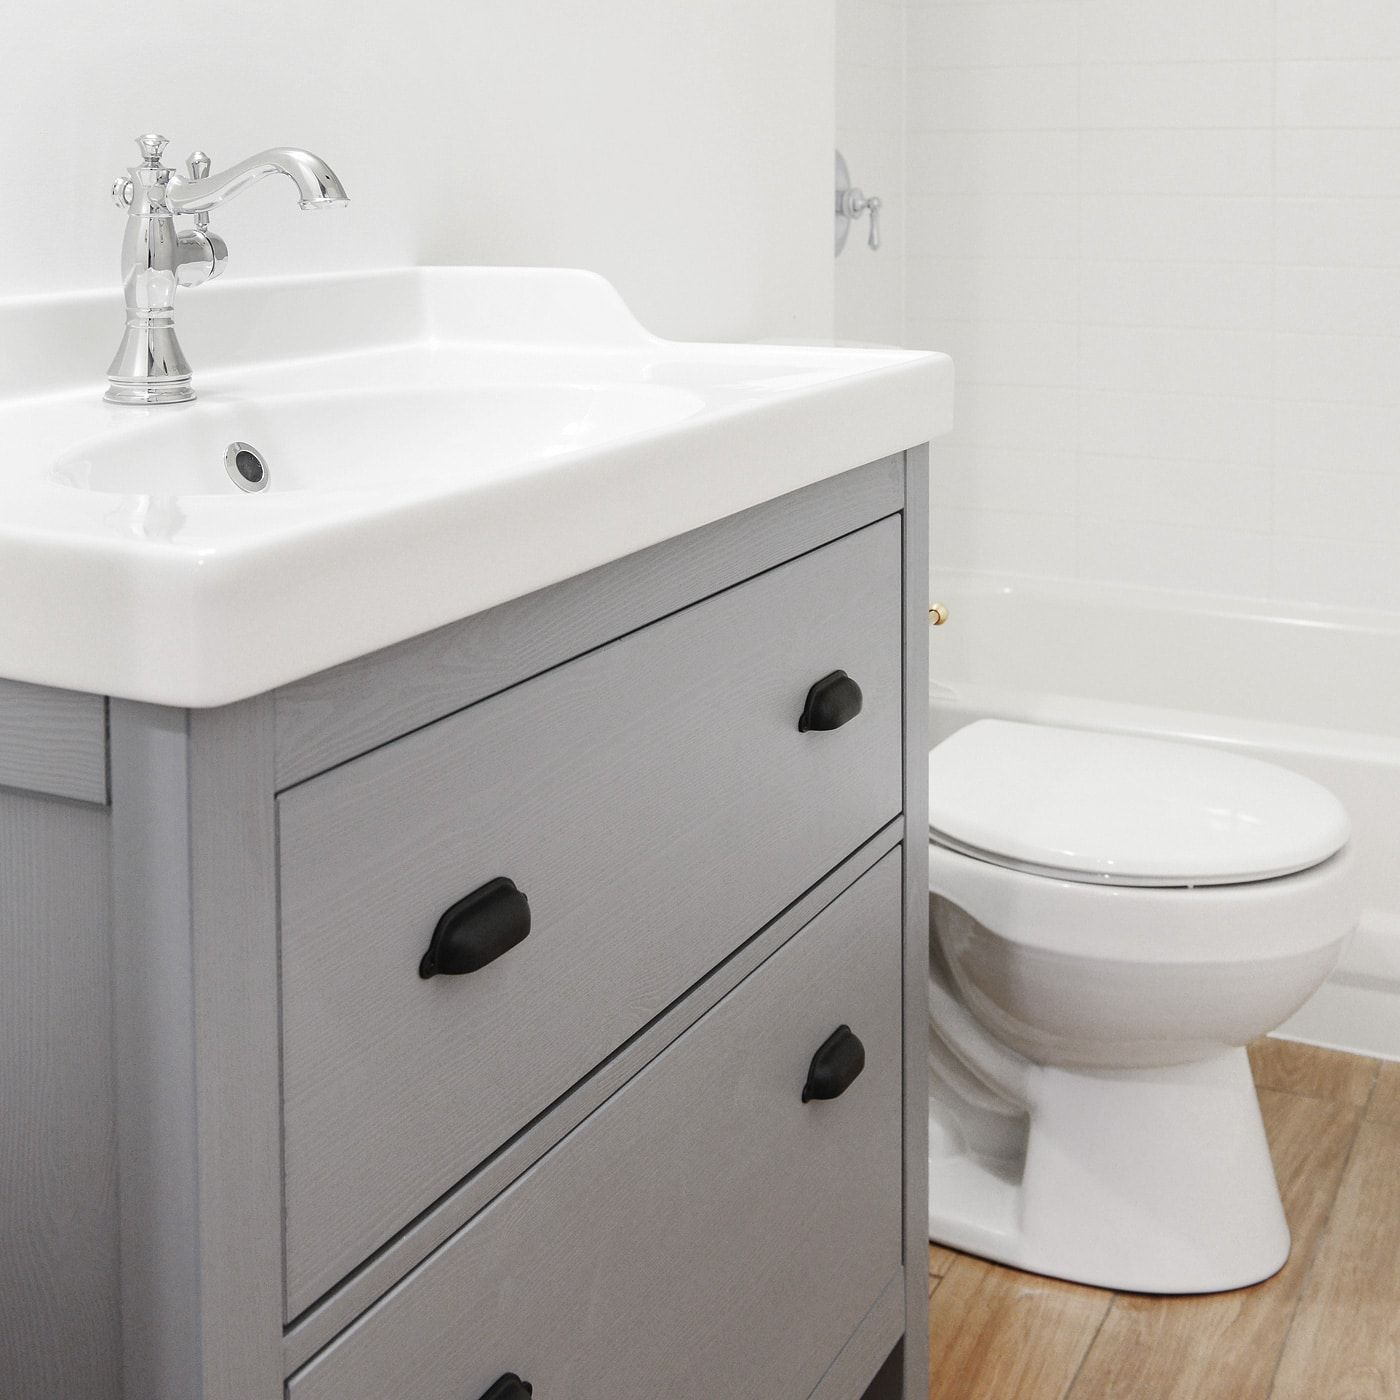 What Makes an IKEA Vanity Stand Out Above the Rest Ikea